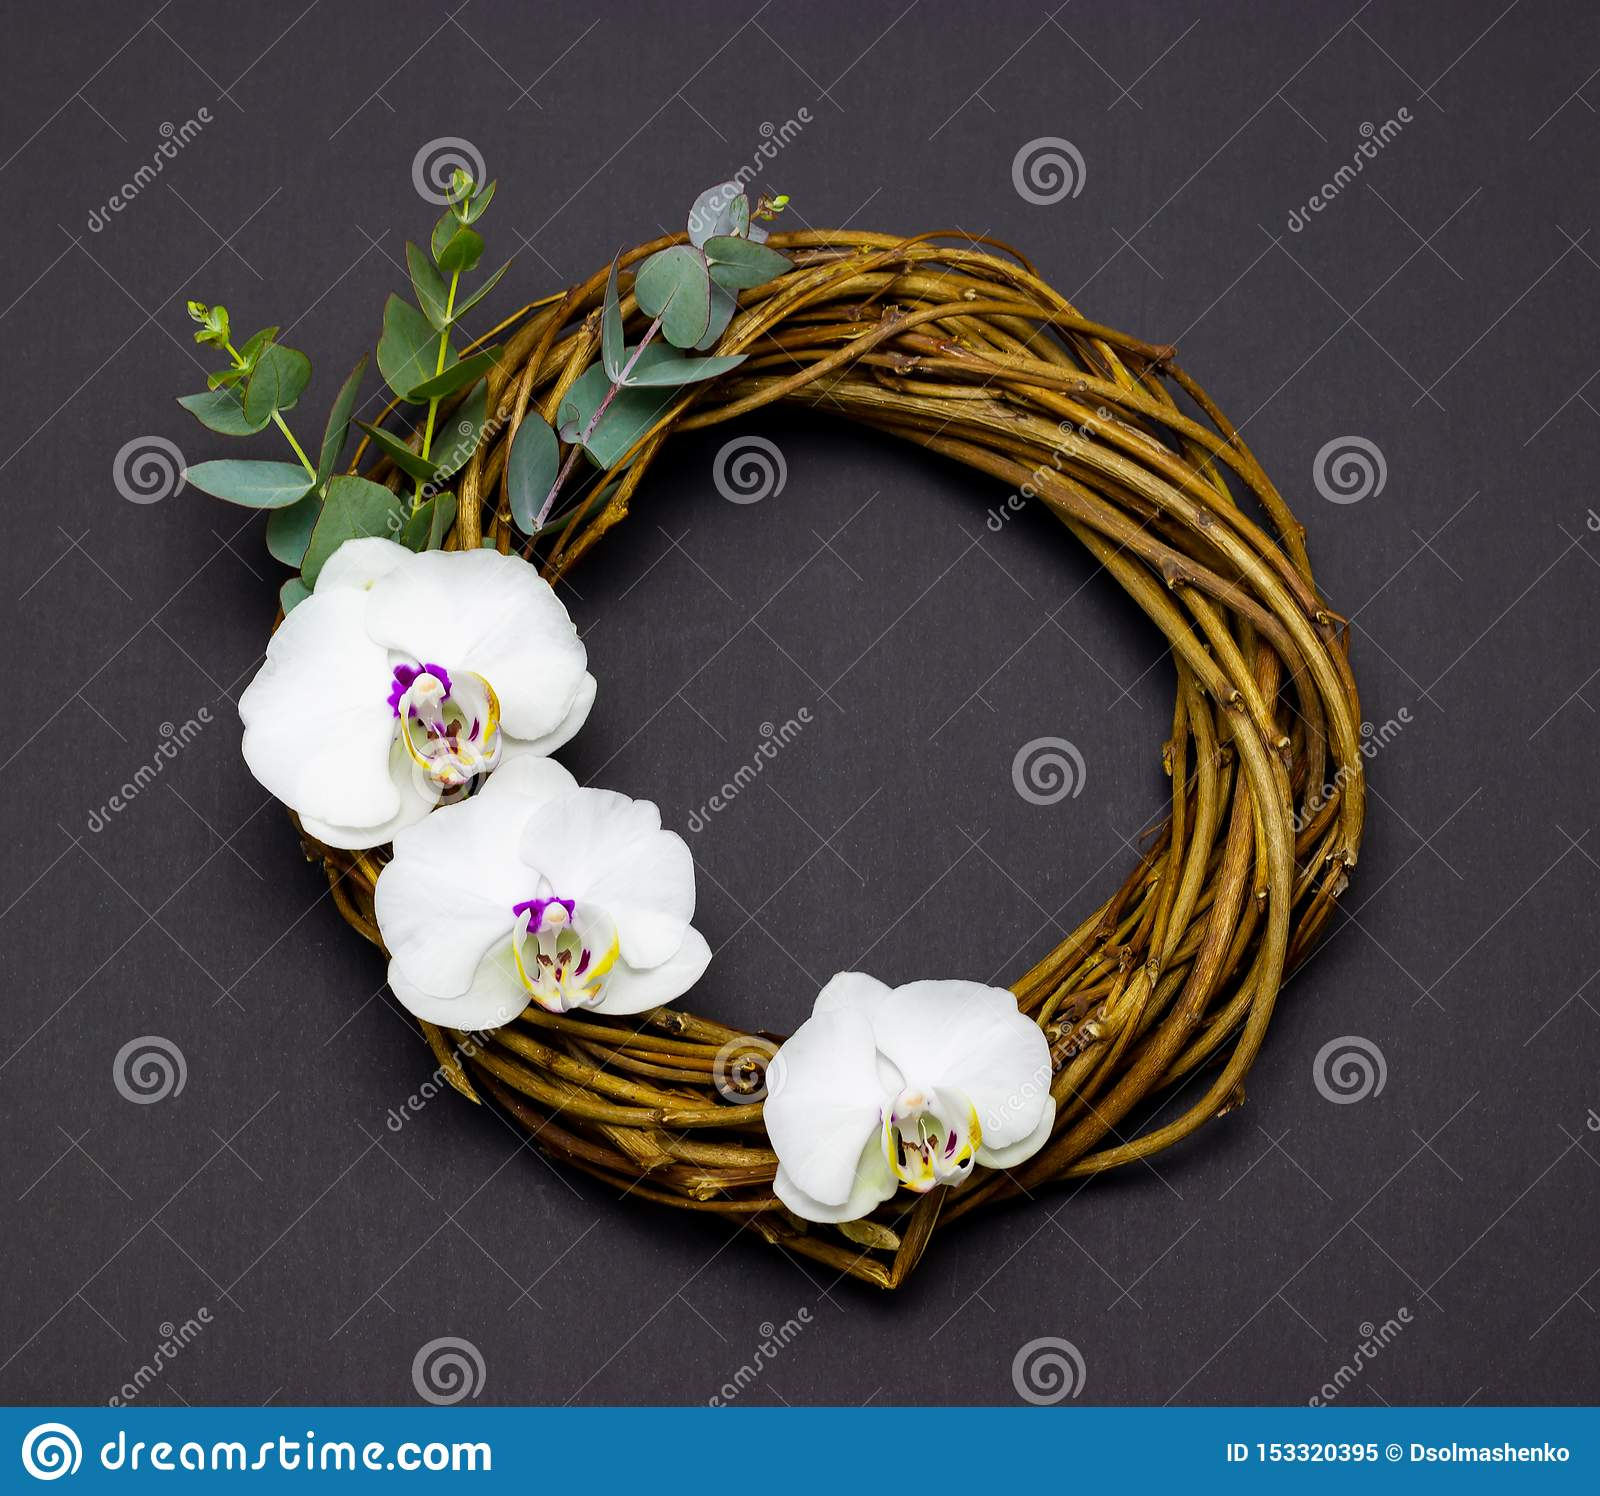 Decorative round wreath with orchid flowers and eucalyptus on a dark background